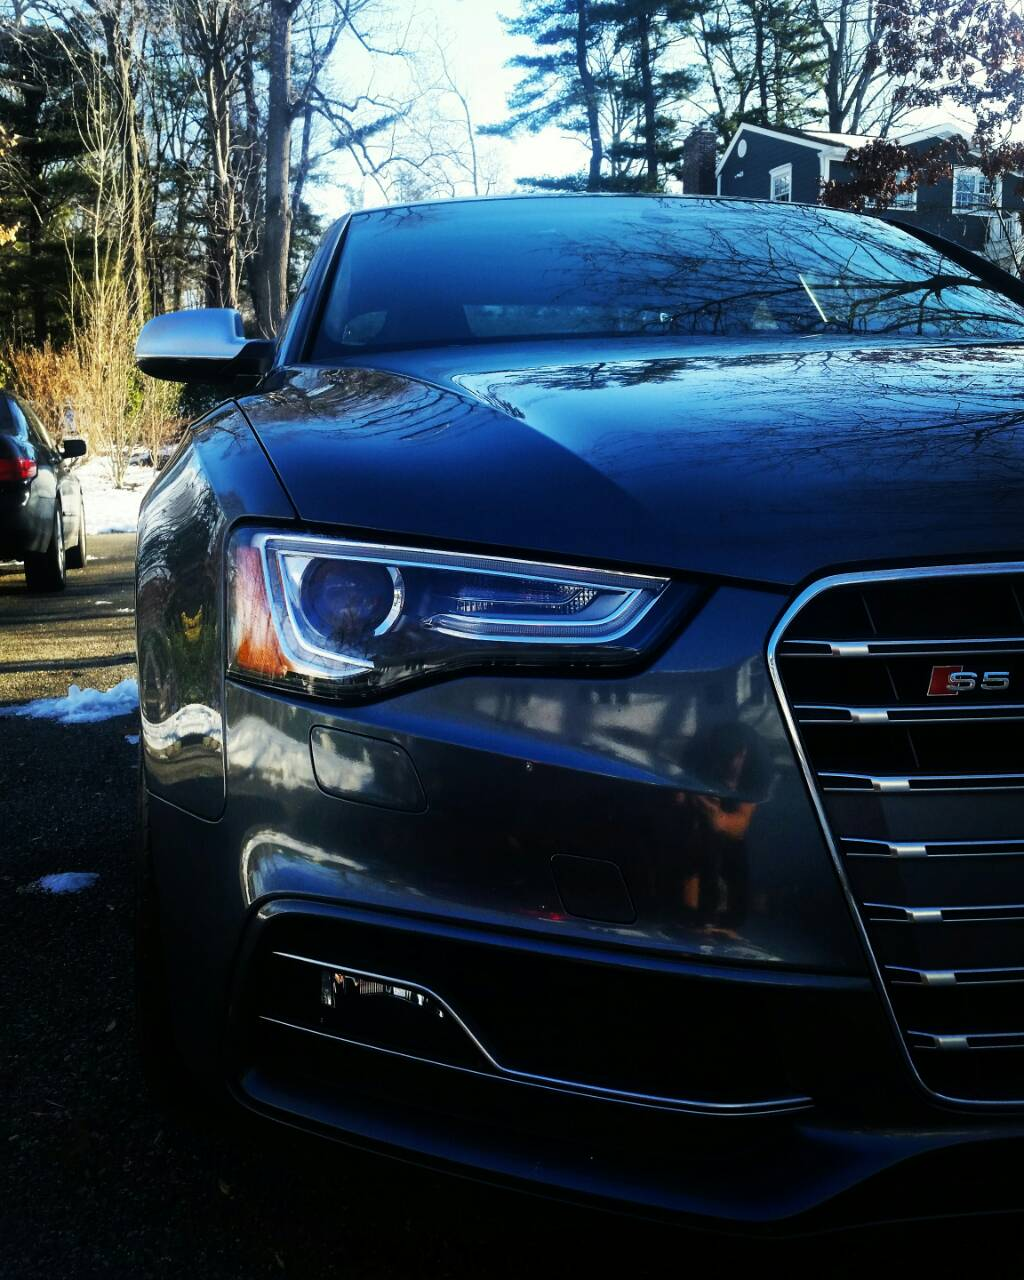 2011 Audi Rs5 For Sale: Official B8 A5/S5/RS5 New Owner Introductory ***